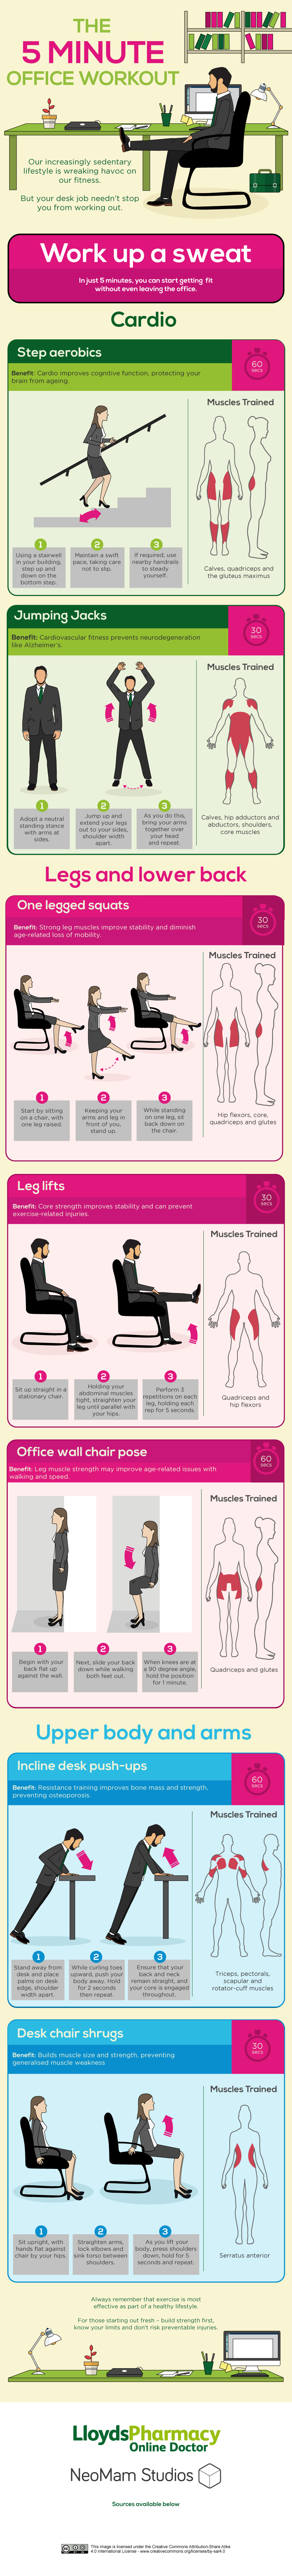 You'll Only Need 5 Minutes To Do This Simple Office Workout Infographic